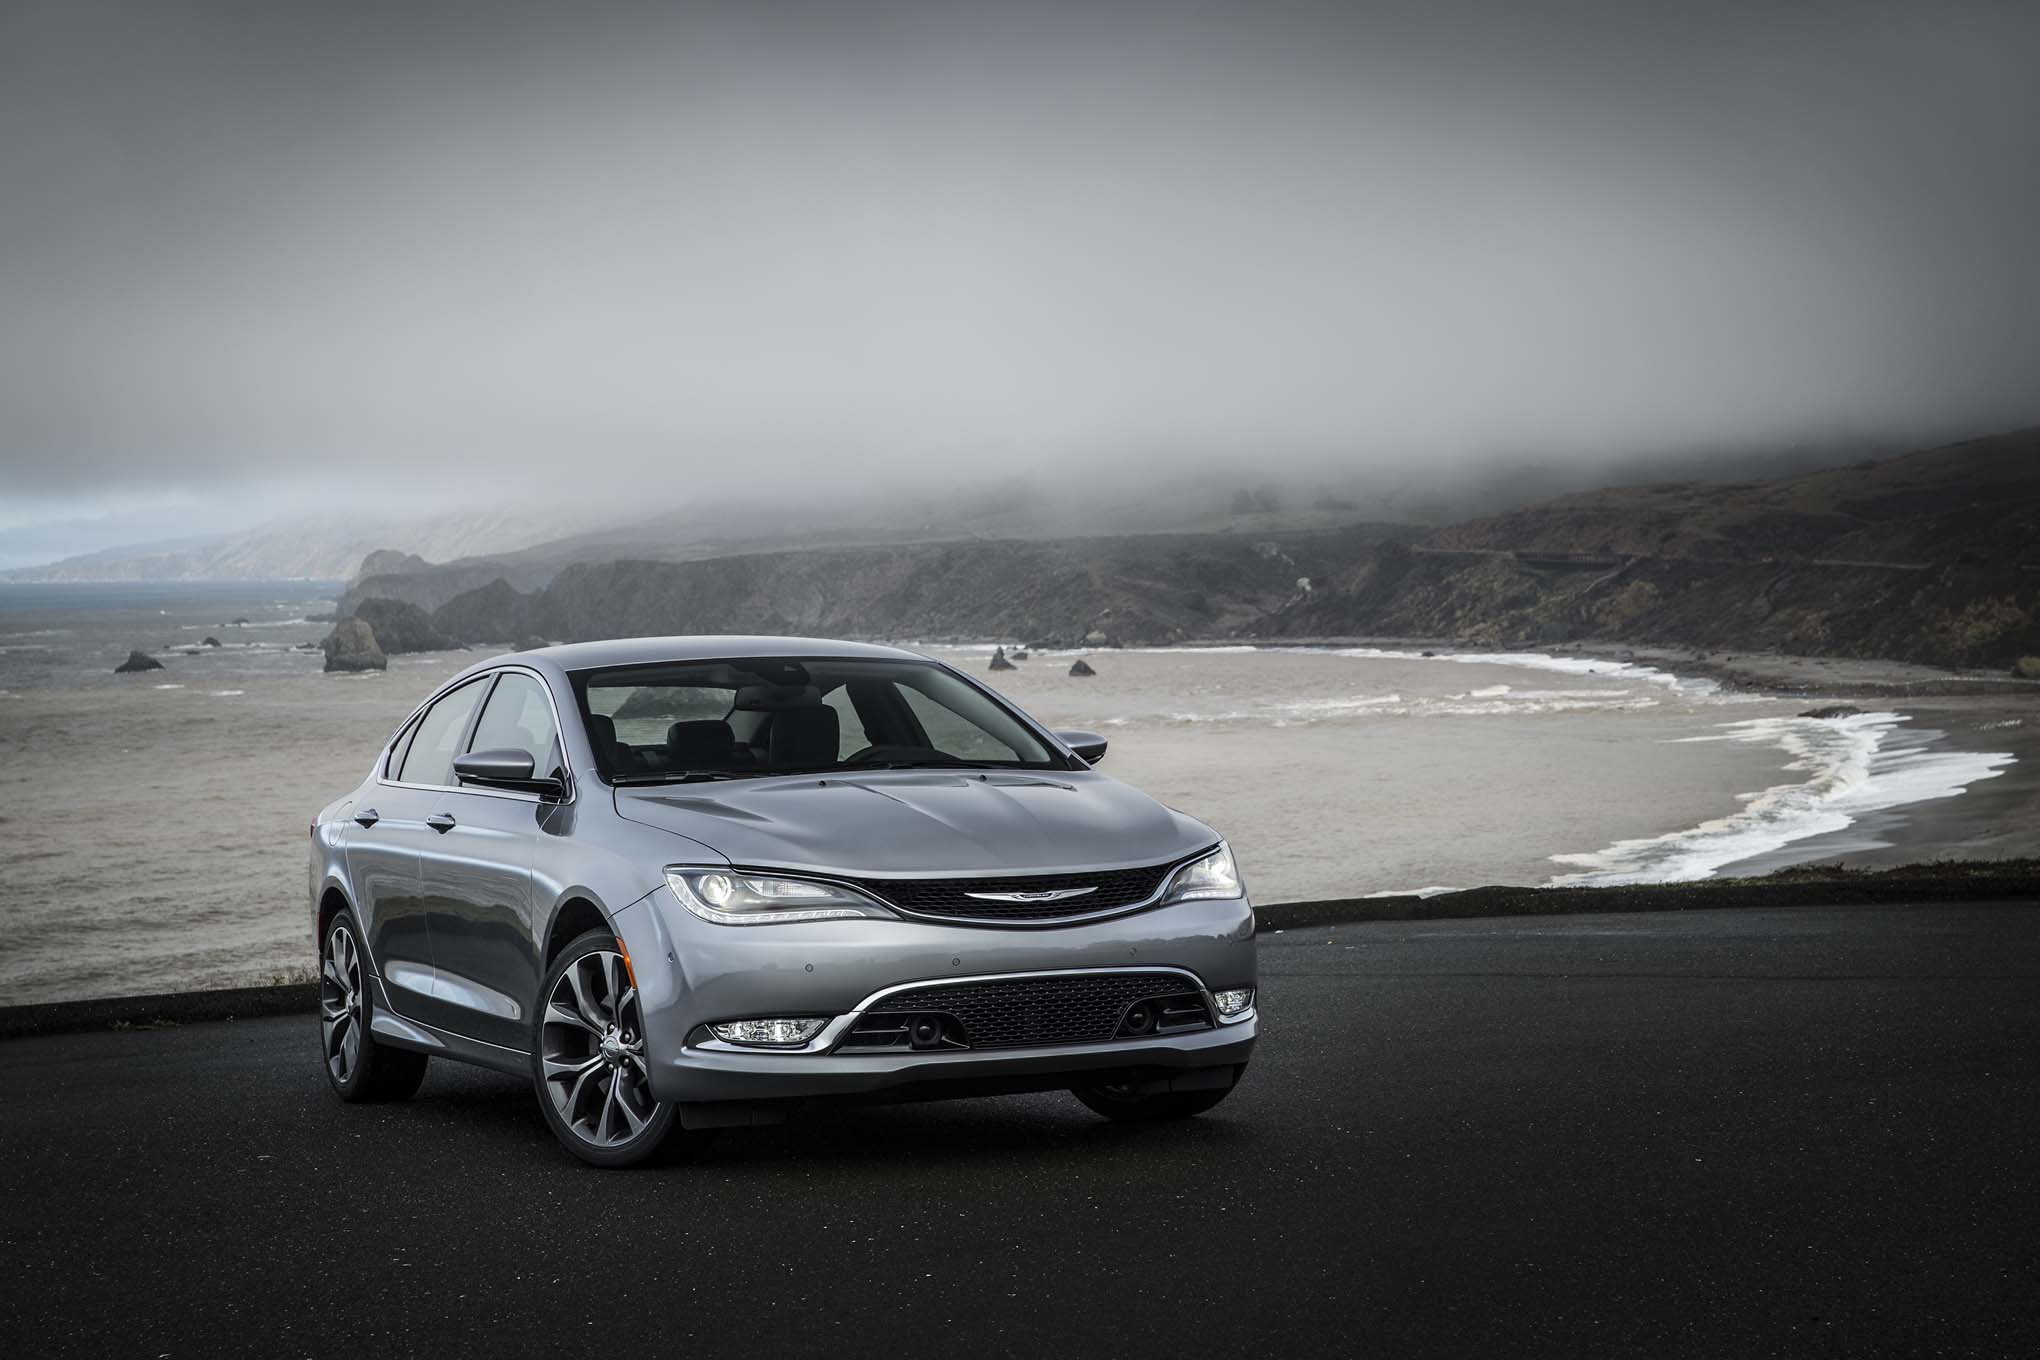 Fca In Discussions With Partner For Next Chrysler Dodge Sedans